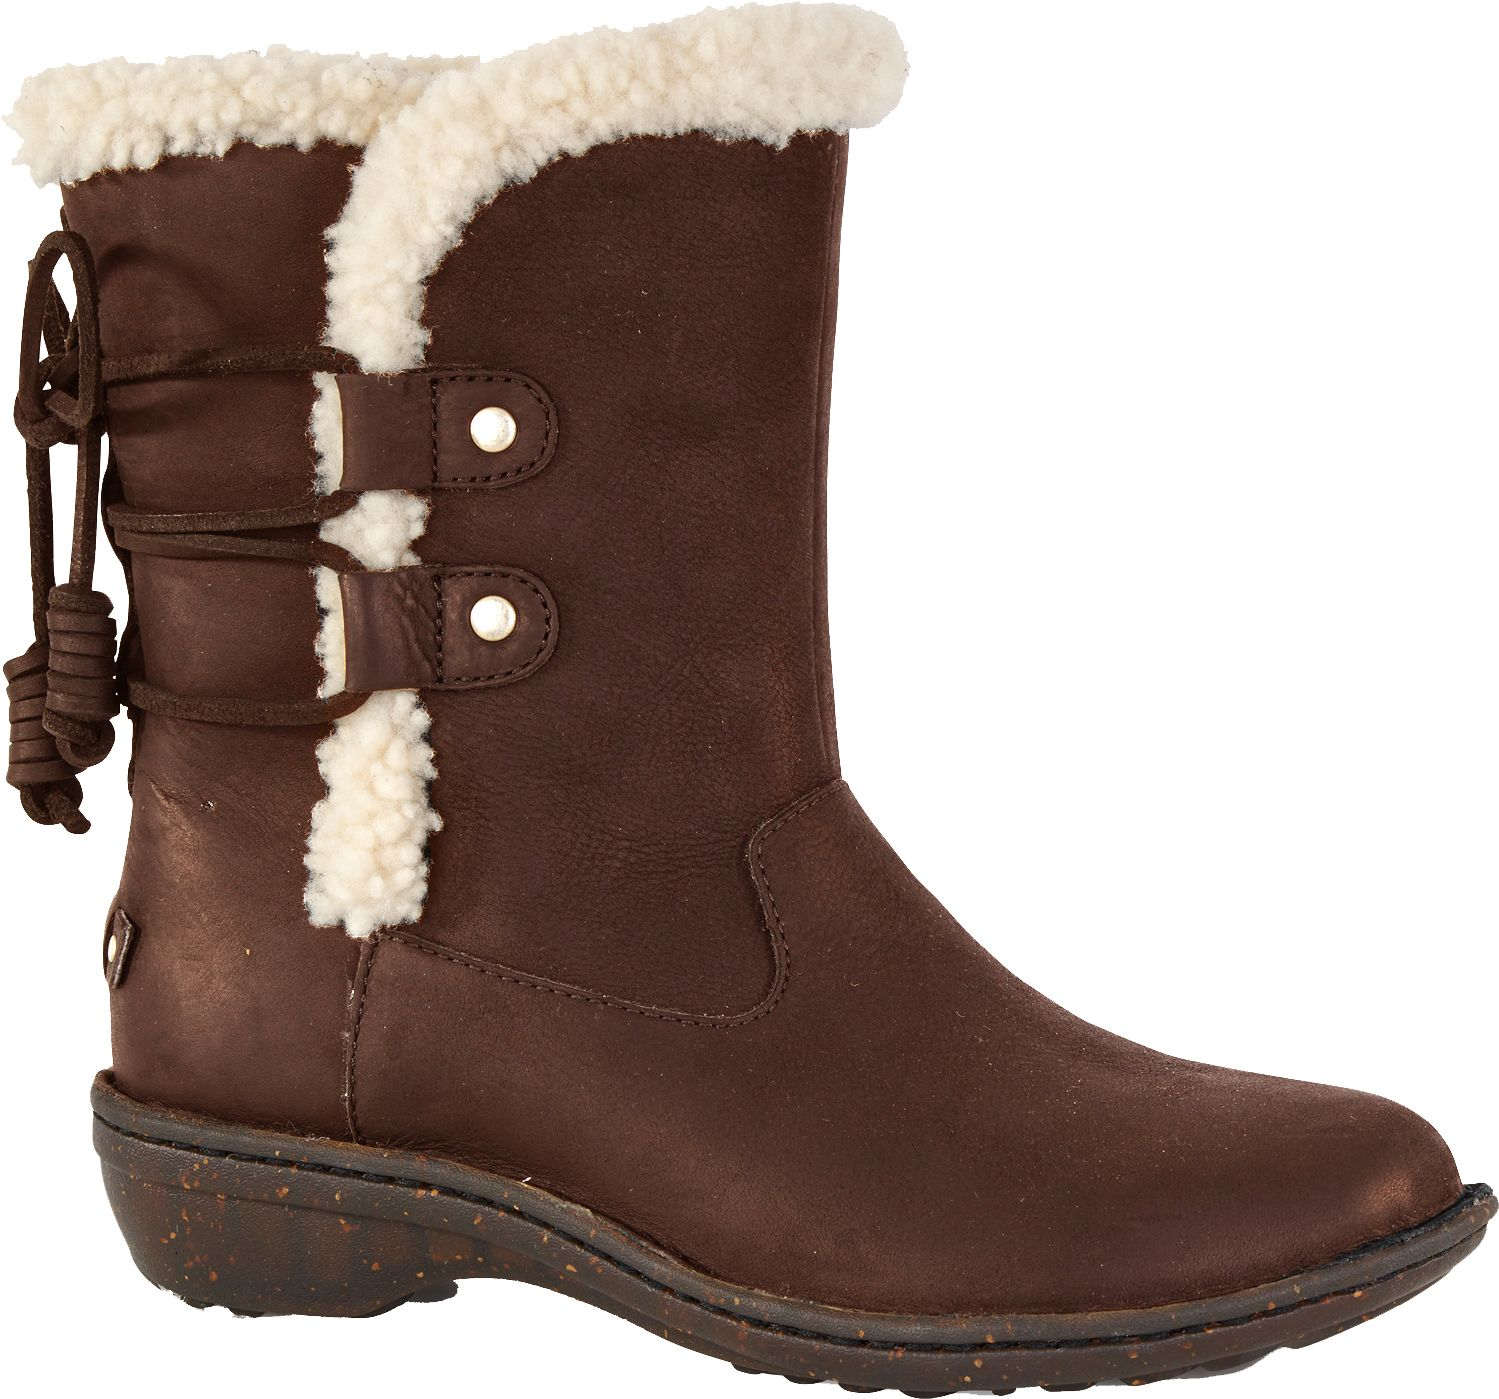 ugg boots for s sporting goods